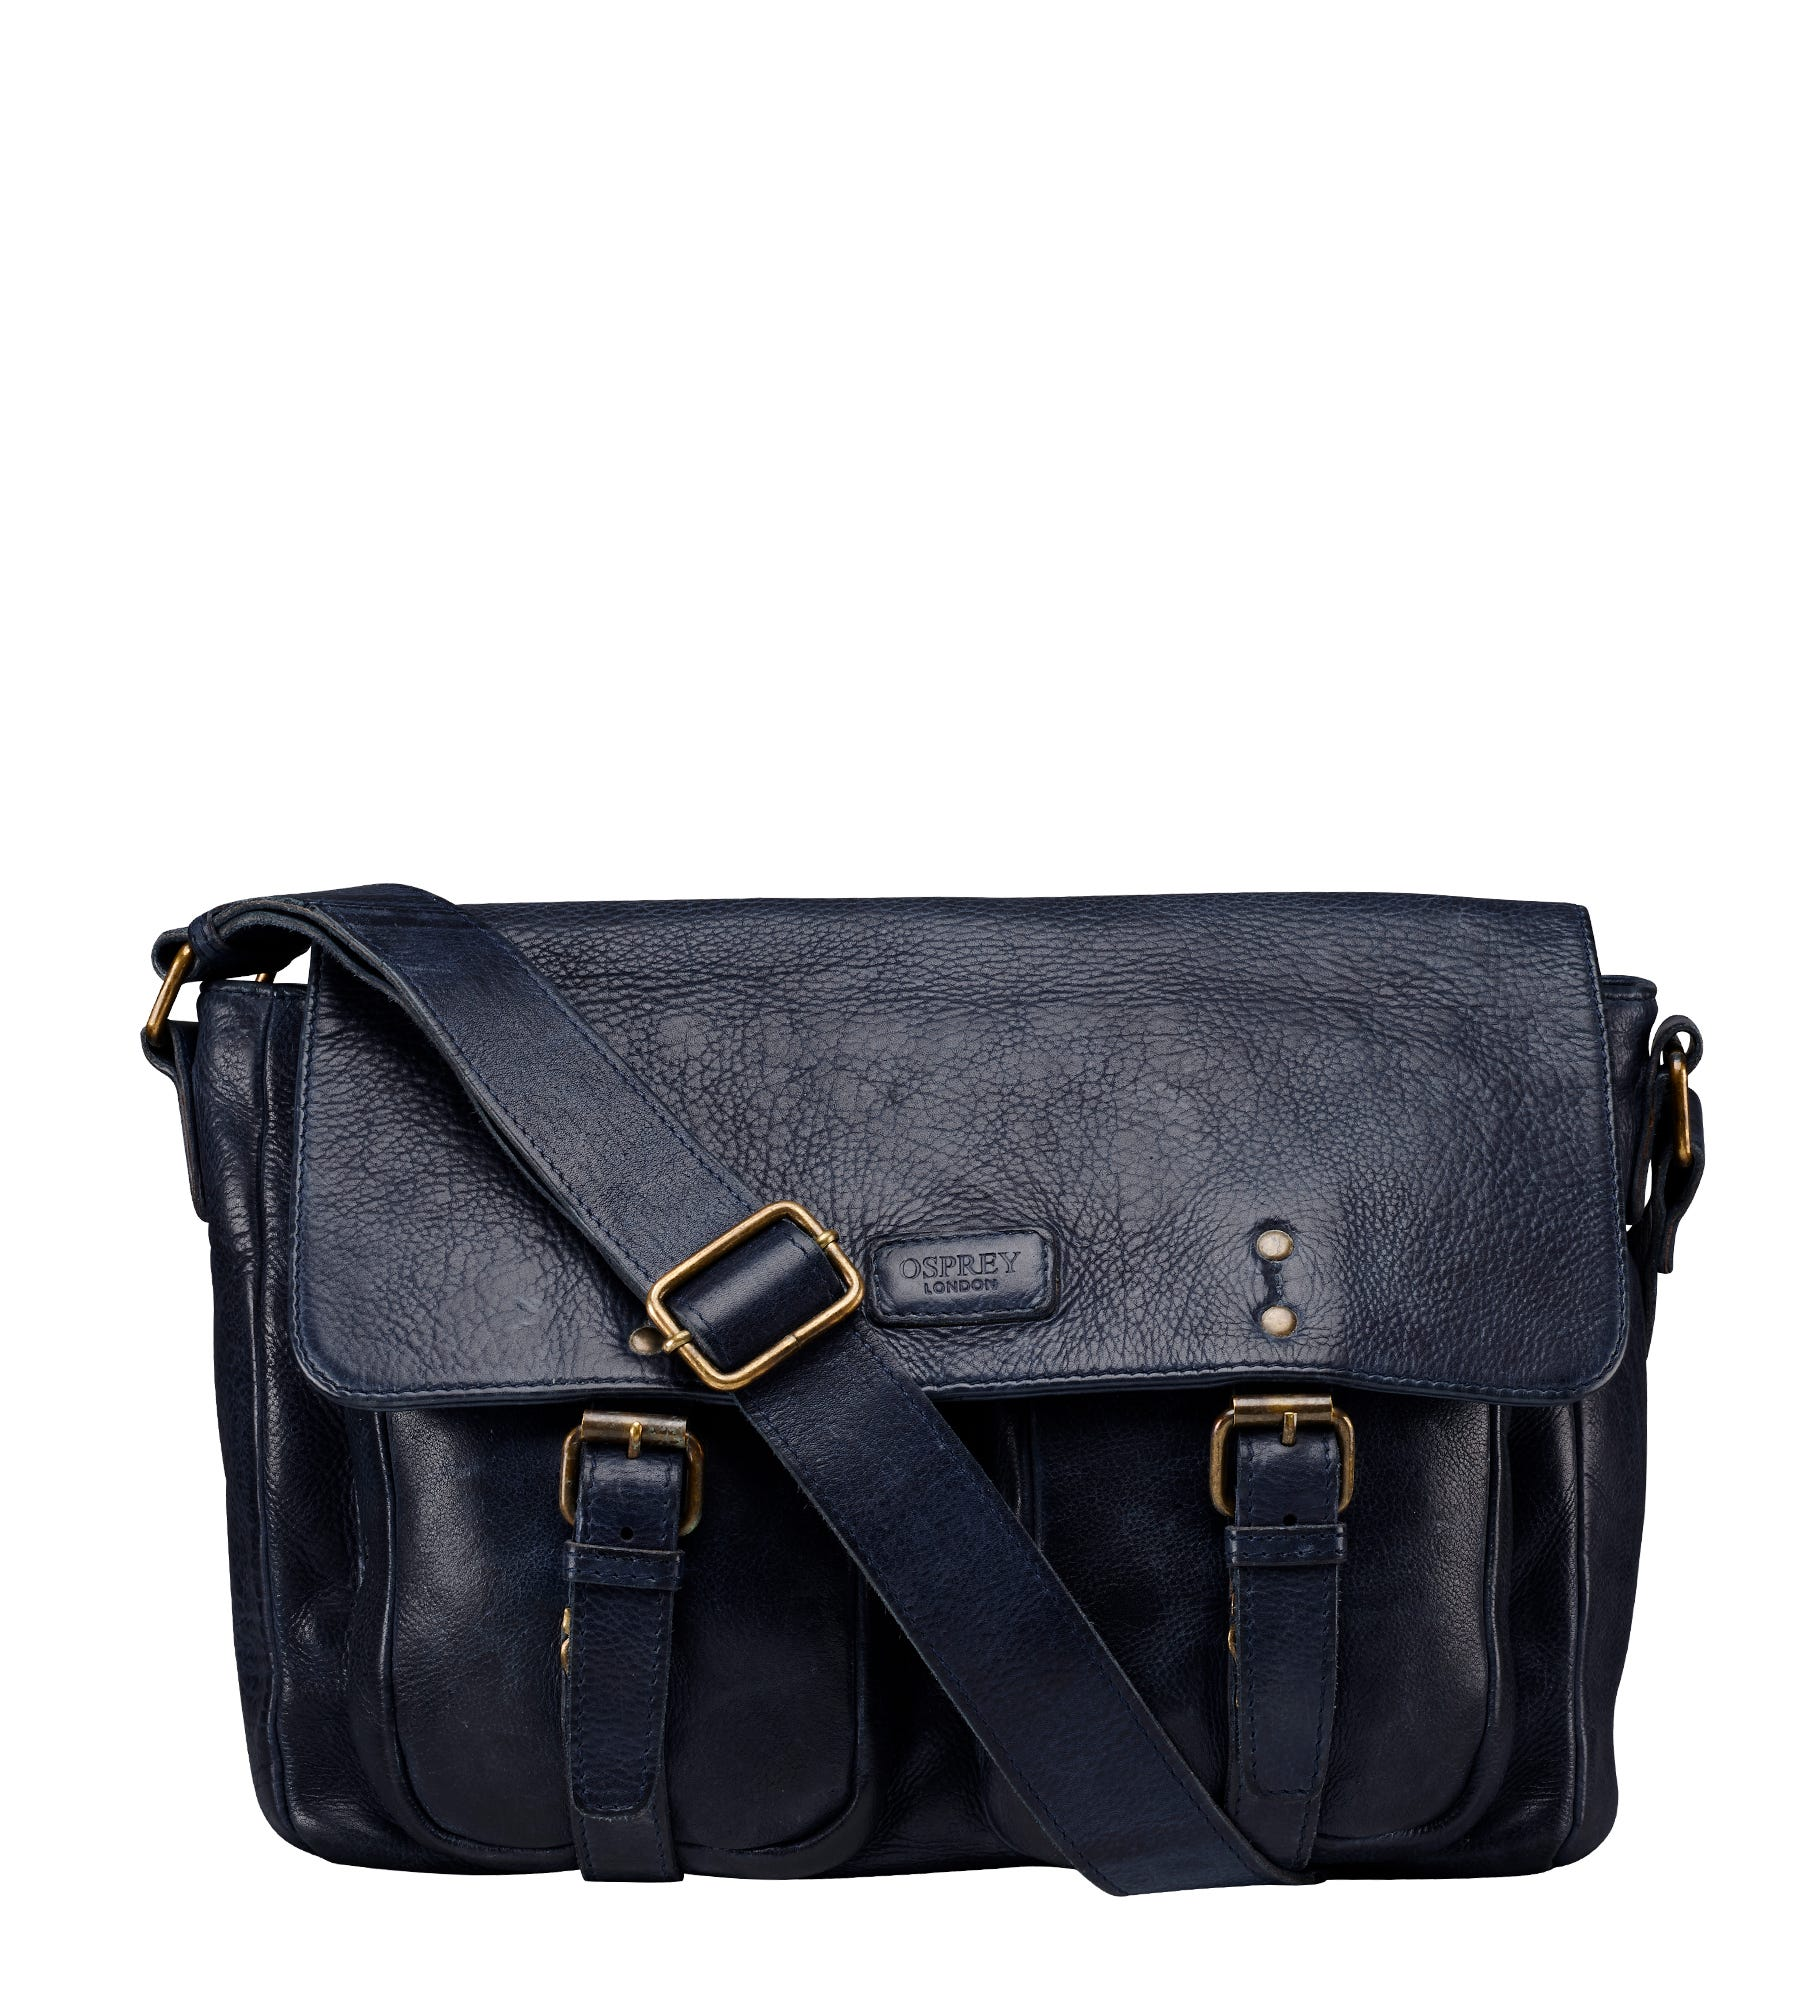 An image of The Hazelden Leather Satchel